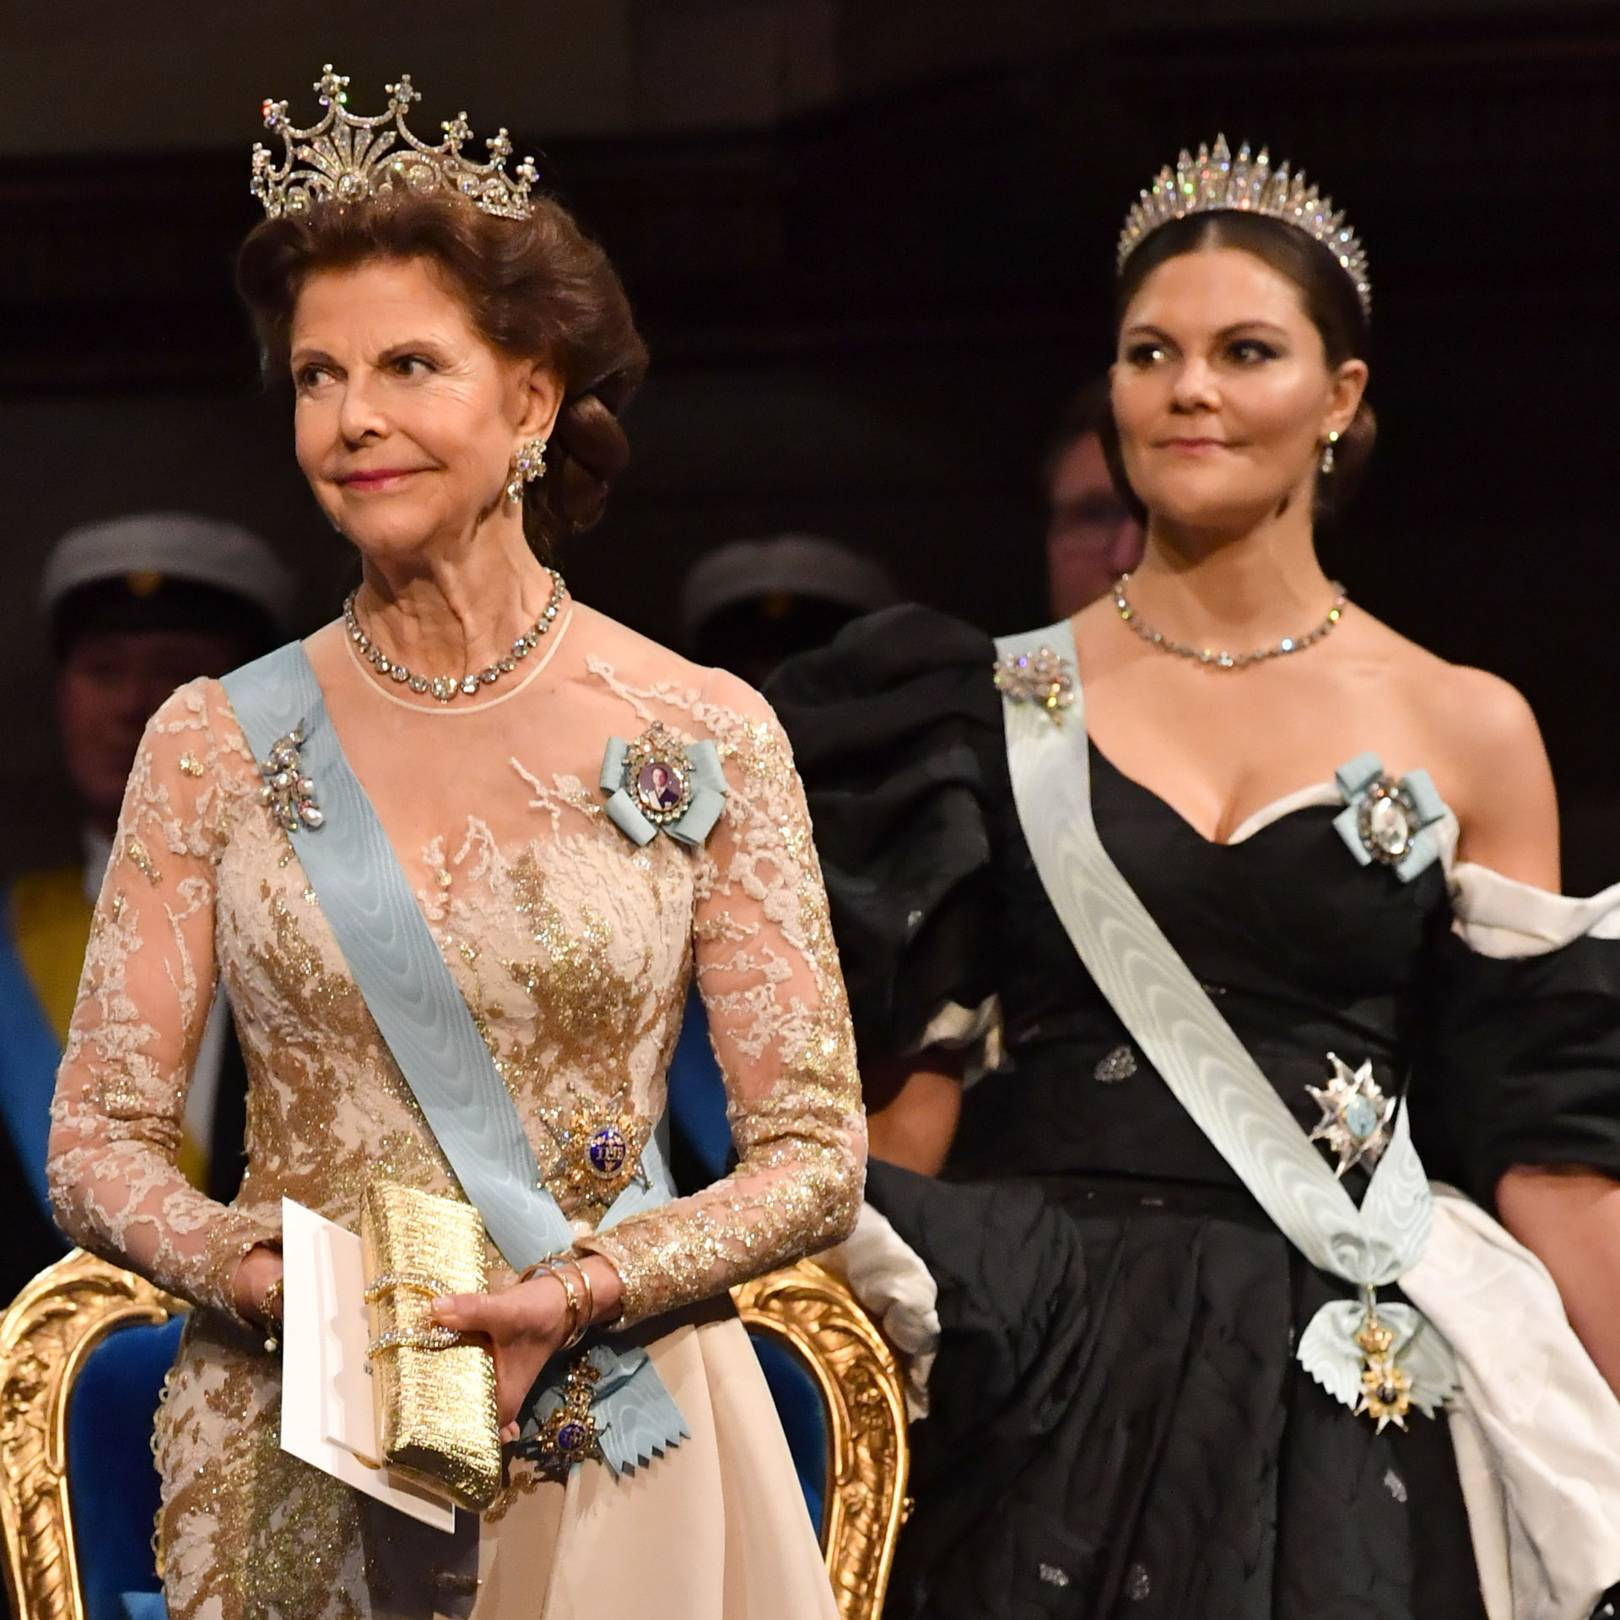 The Swedish royals dazzle at the Nobel Prize Ceremony